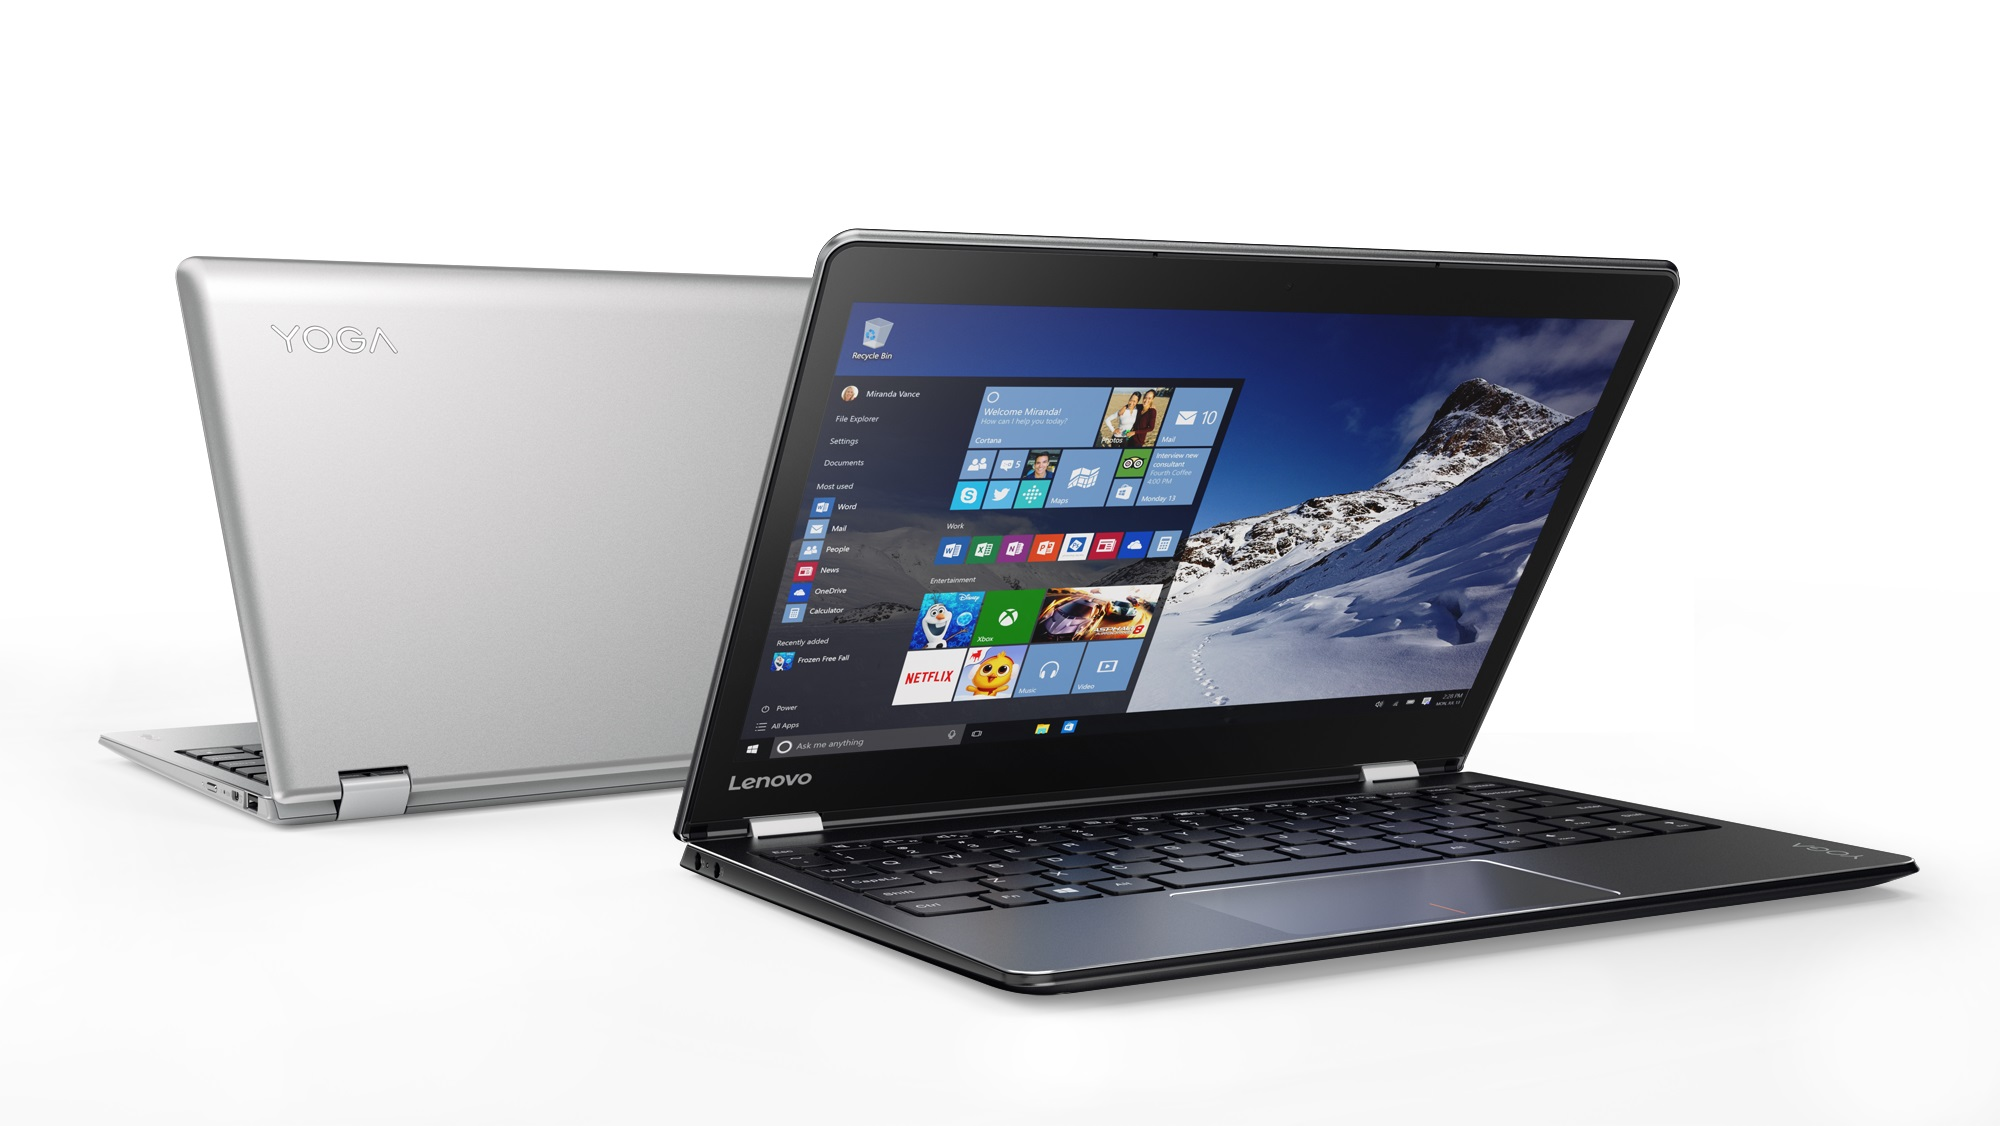 Lenovo_YOGA_710_11-inch_black_and_silver-low